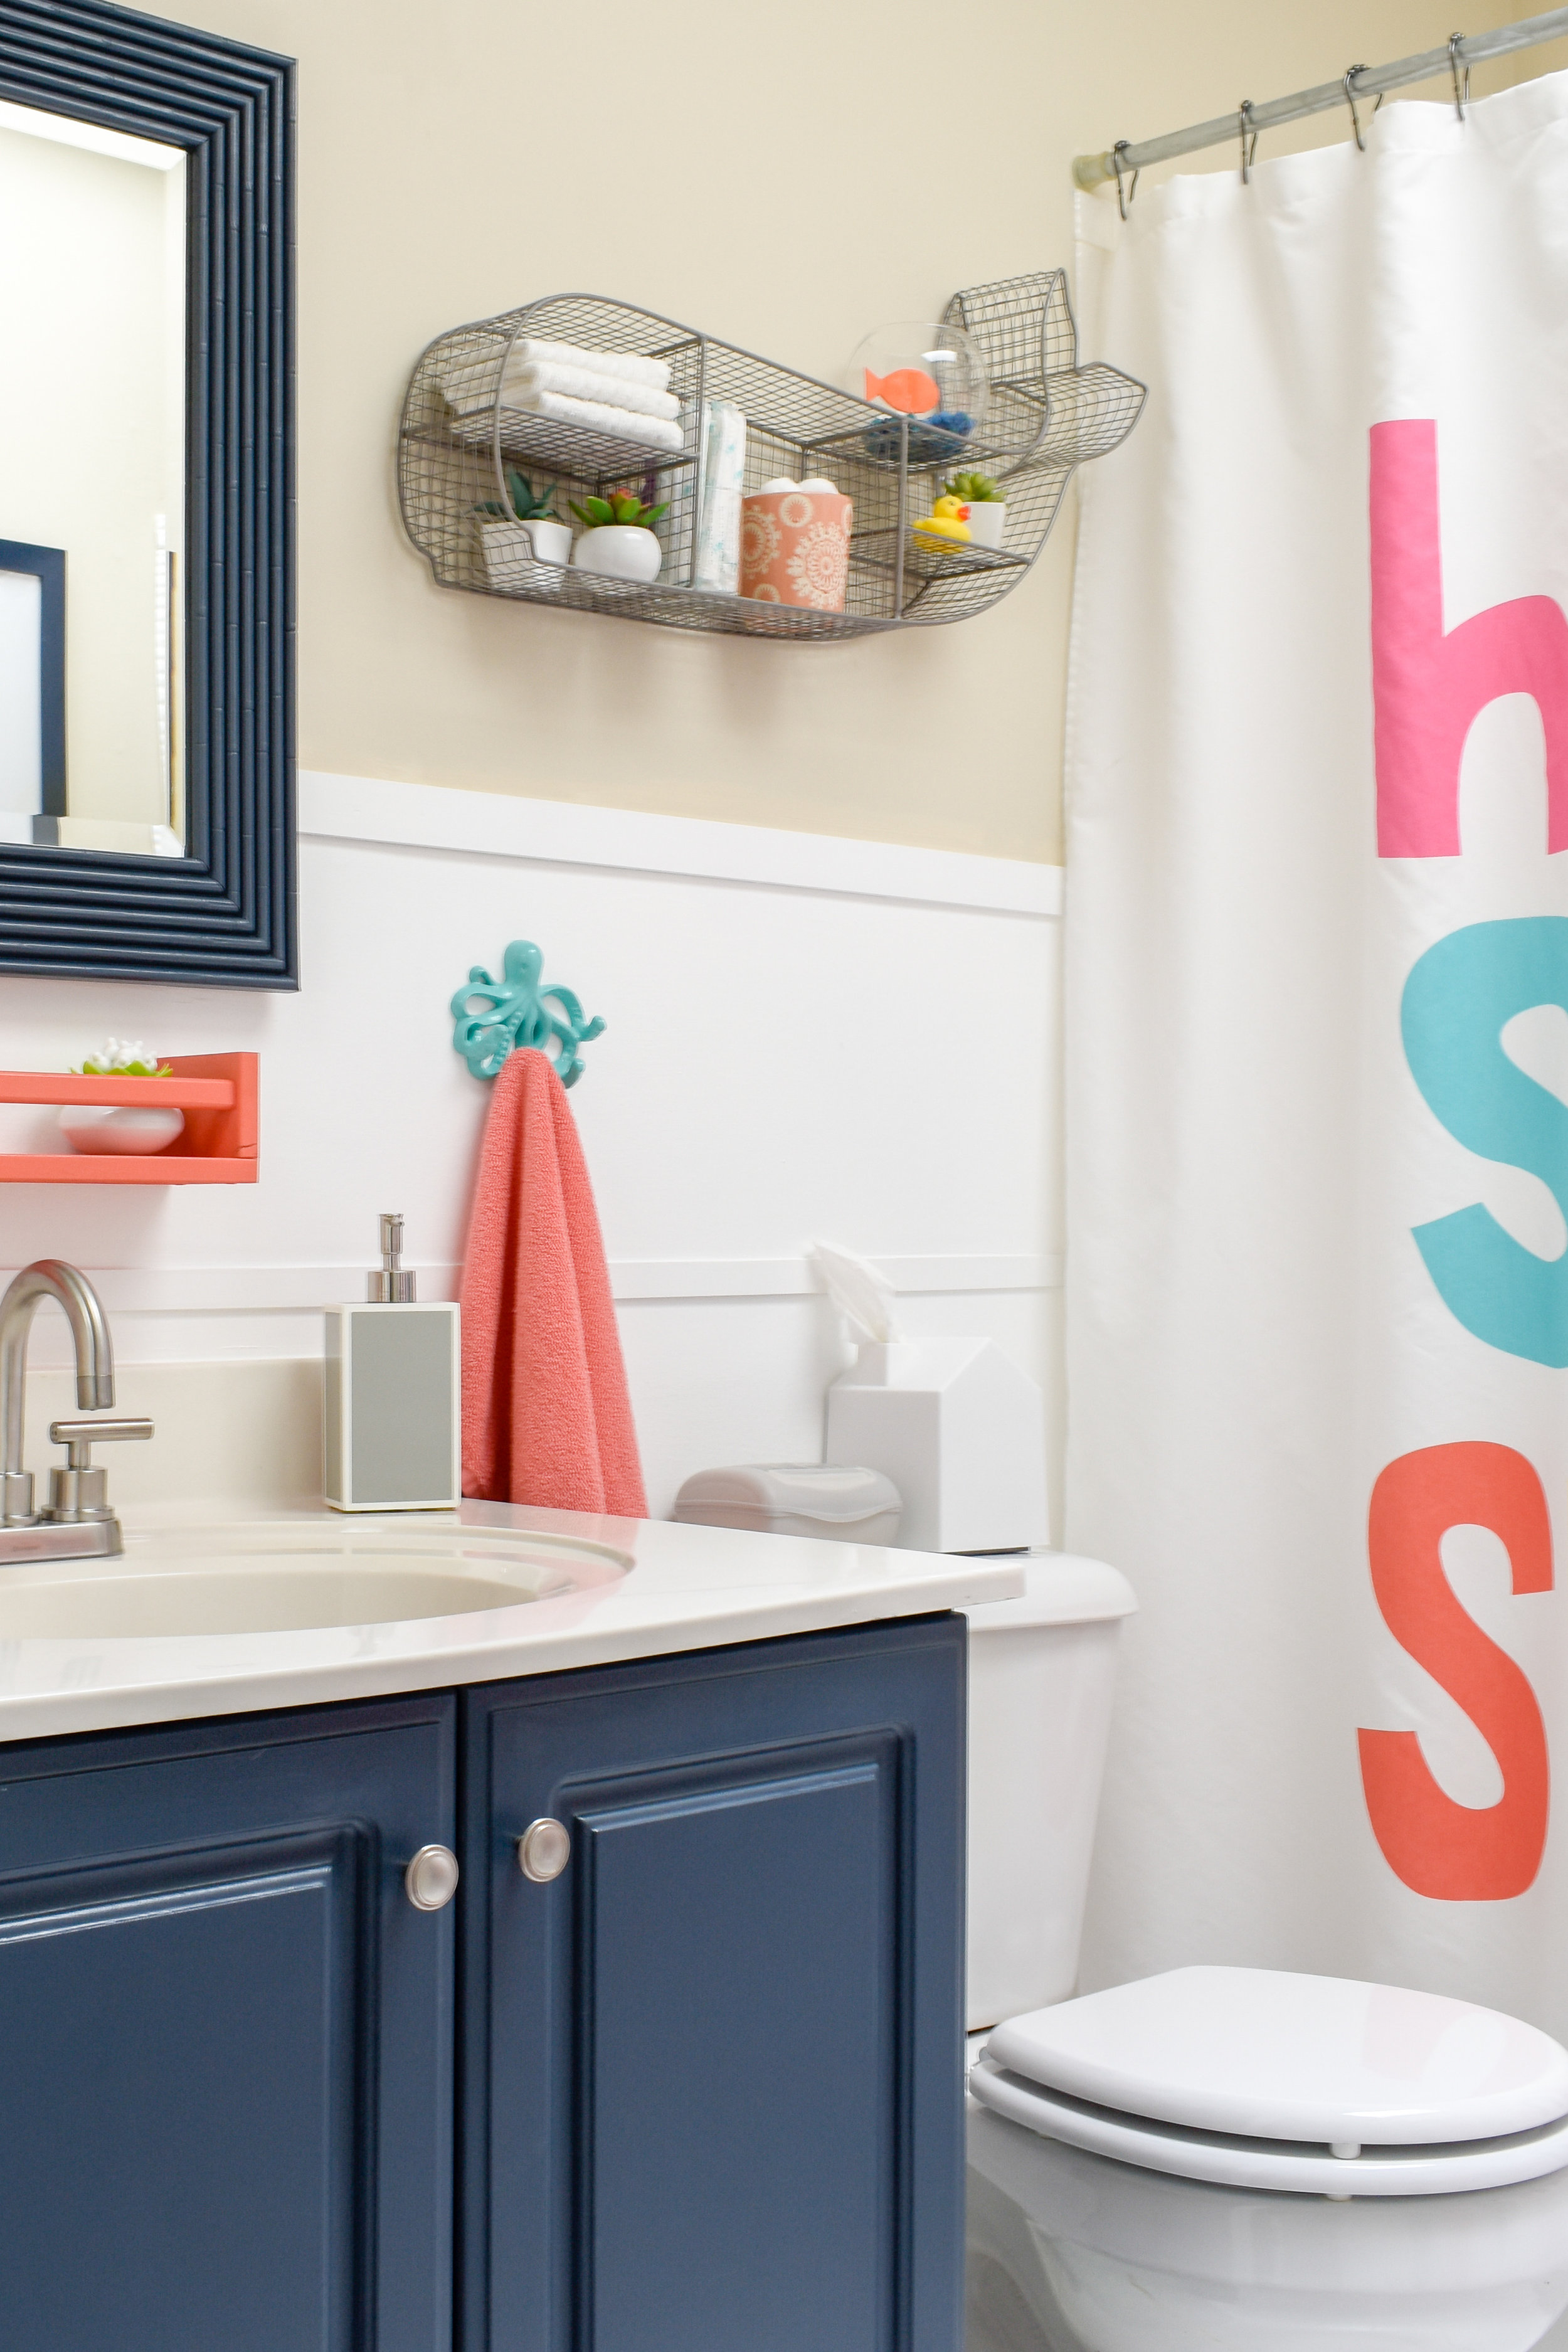 colorful kids bathroom renovation - here's what we were able to accomplish in just one day for less than $200